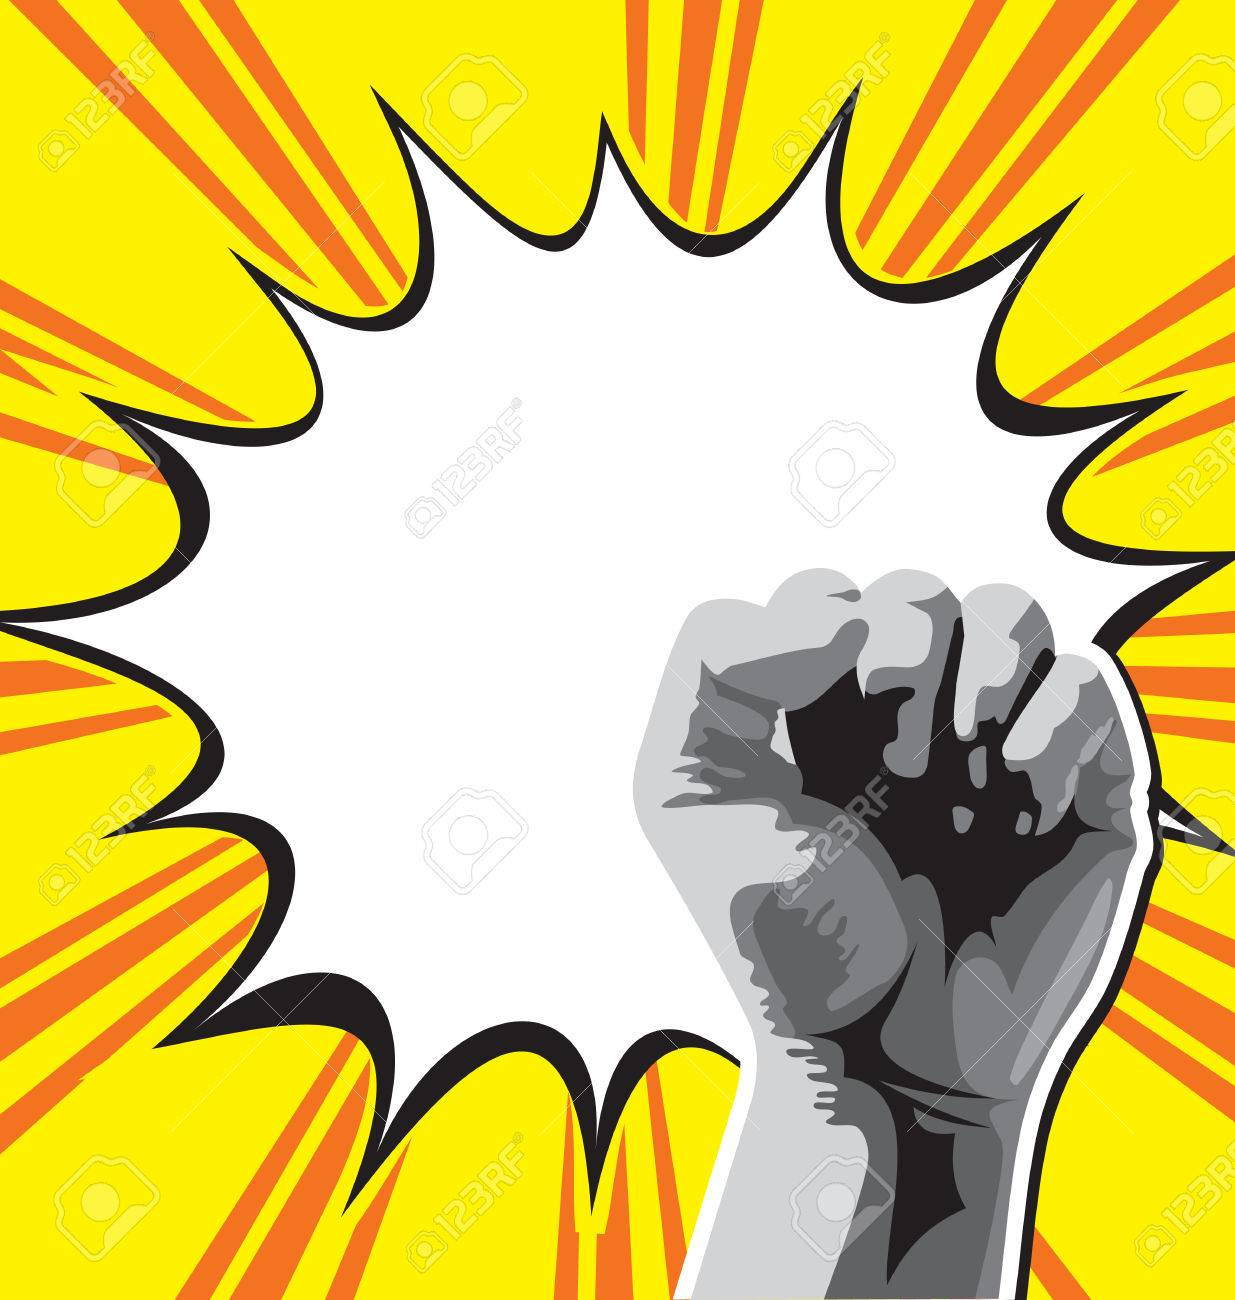 1235x1300 Vector Illustration Of Fist Held High In Protest Royalty Free